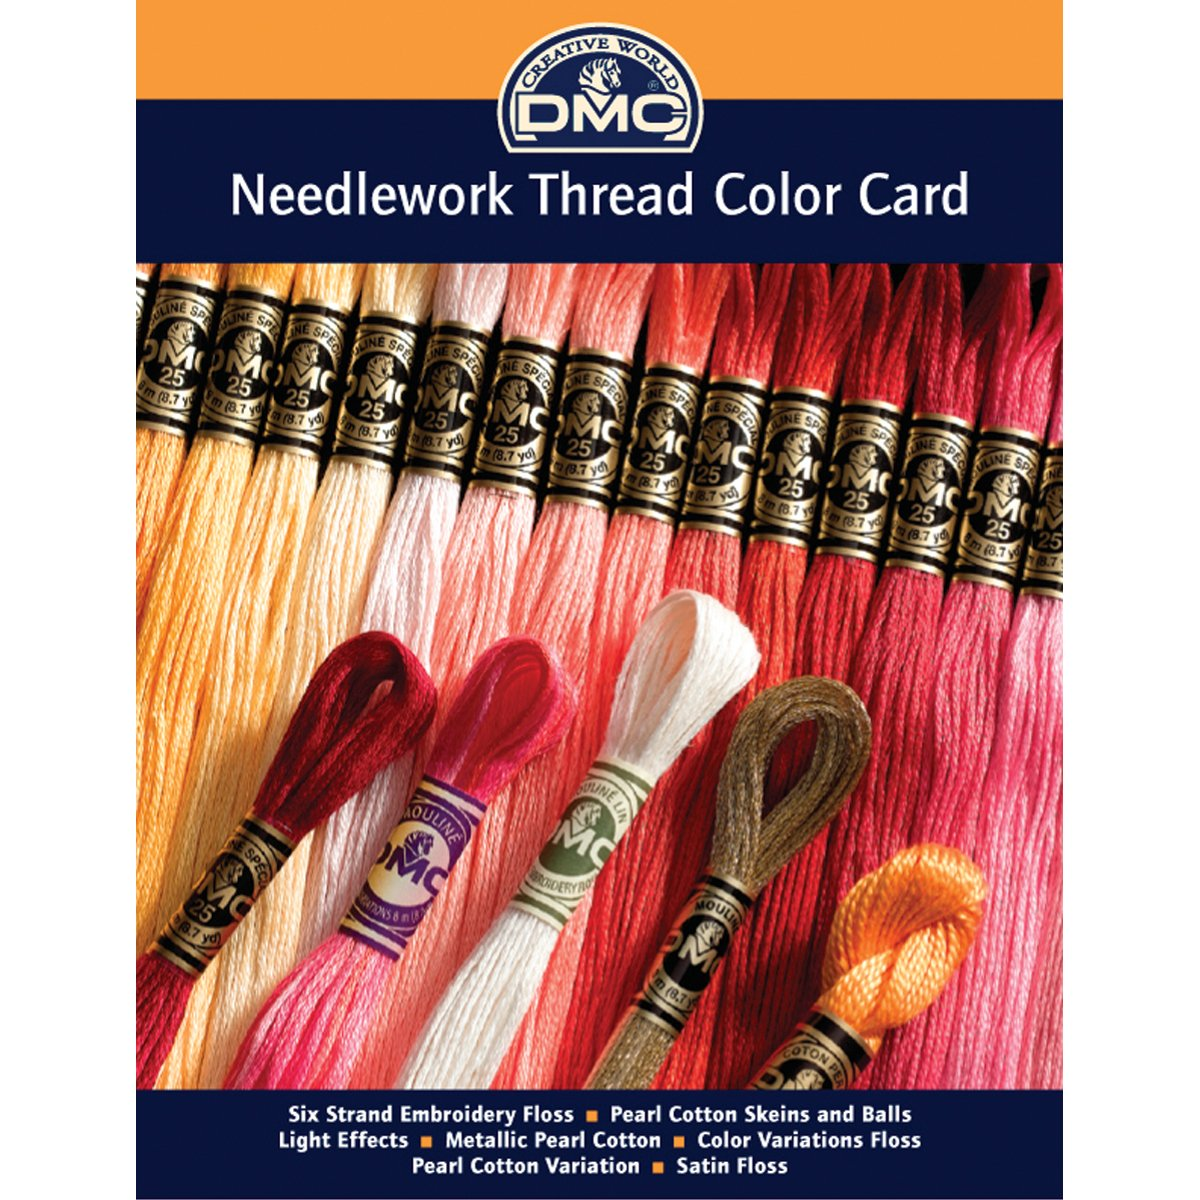 Amazon dmc colorcrd needlework threads 12 page printed color amazon dmc colorcrd needlework threads 12 page printed color card dmc corporation arts crafts sewing geenschuldenfo Images